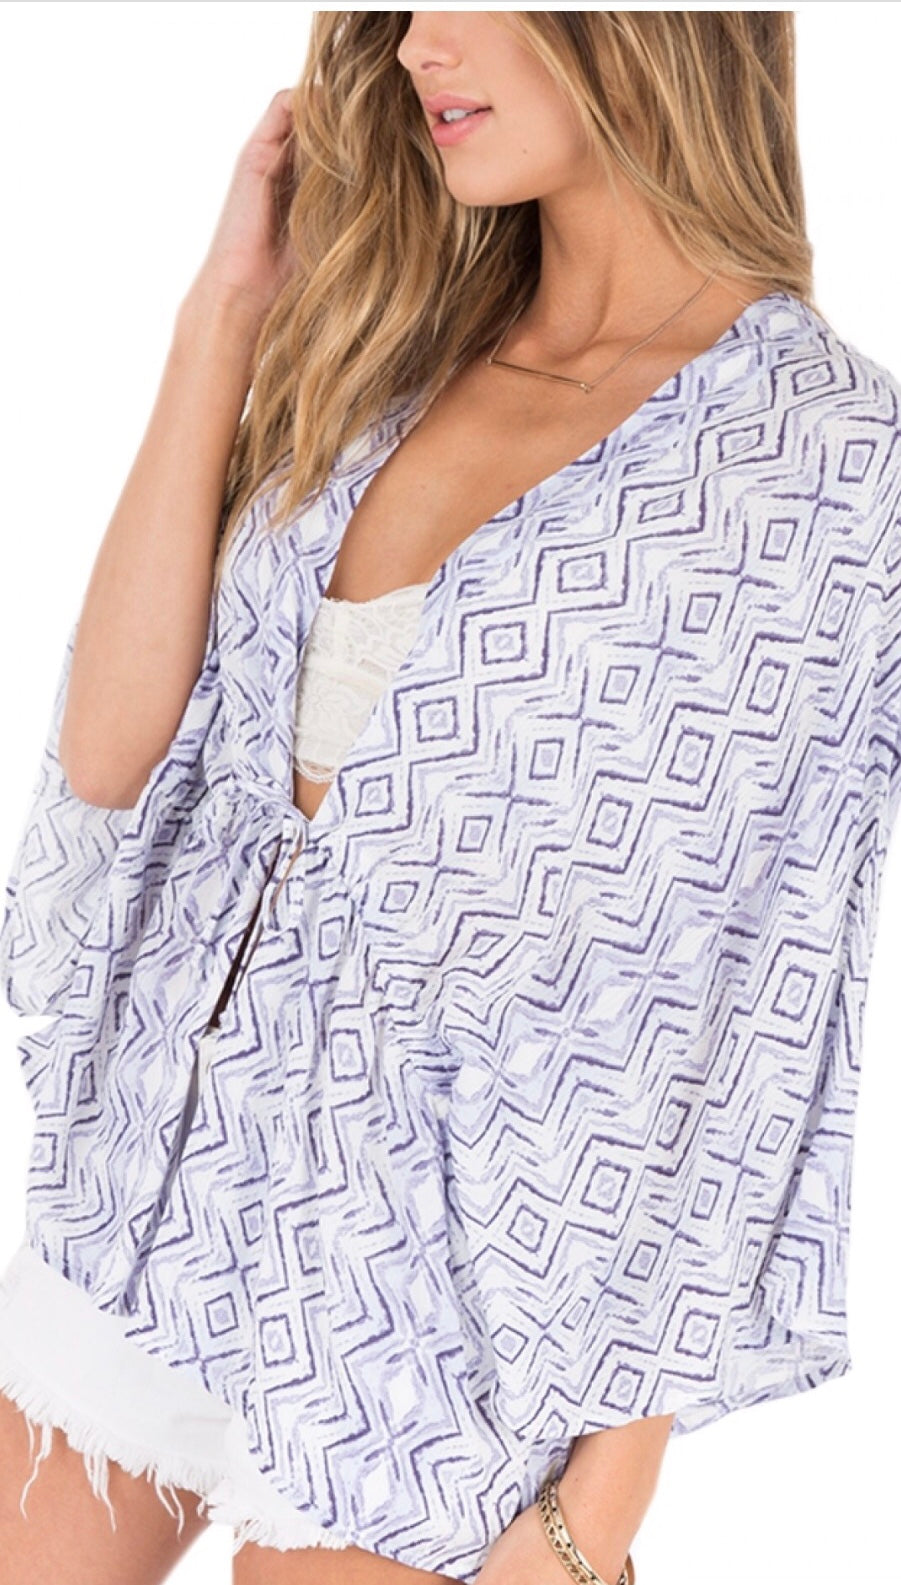 Purple & White Printed Cardigan by Others Follow